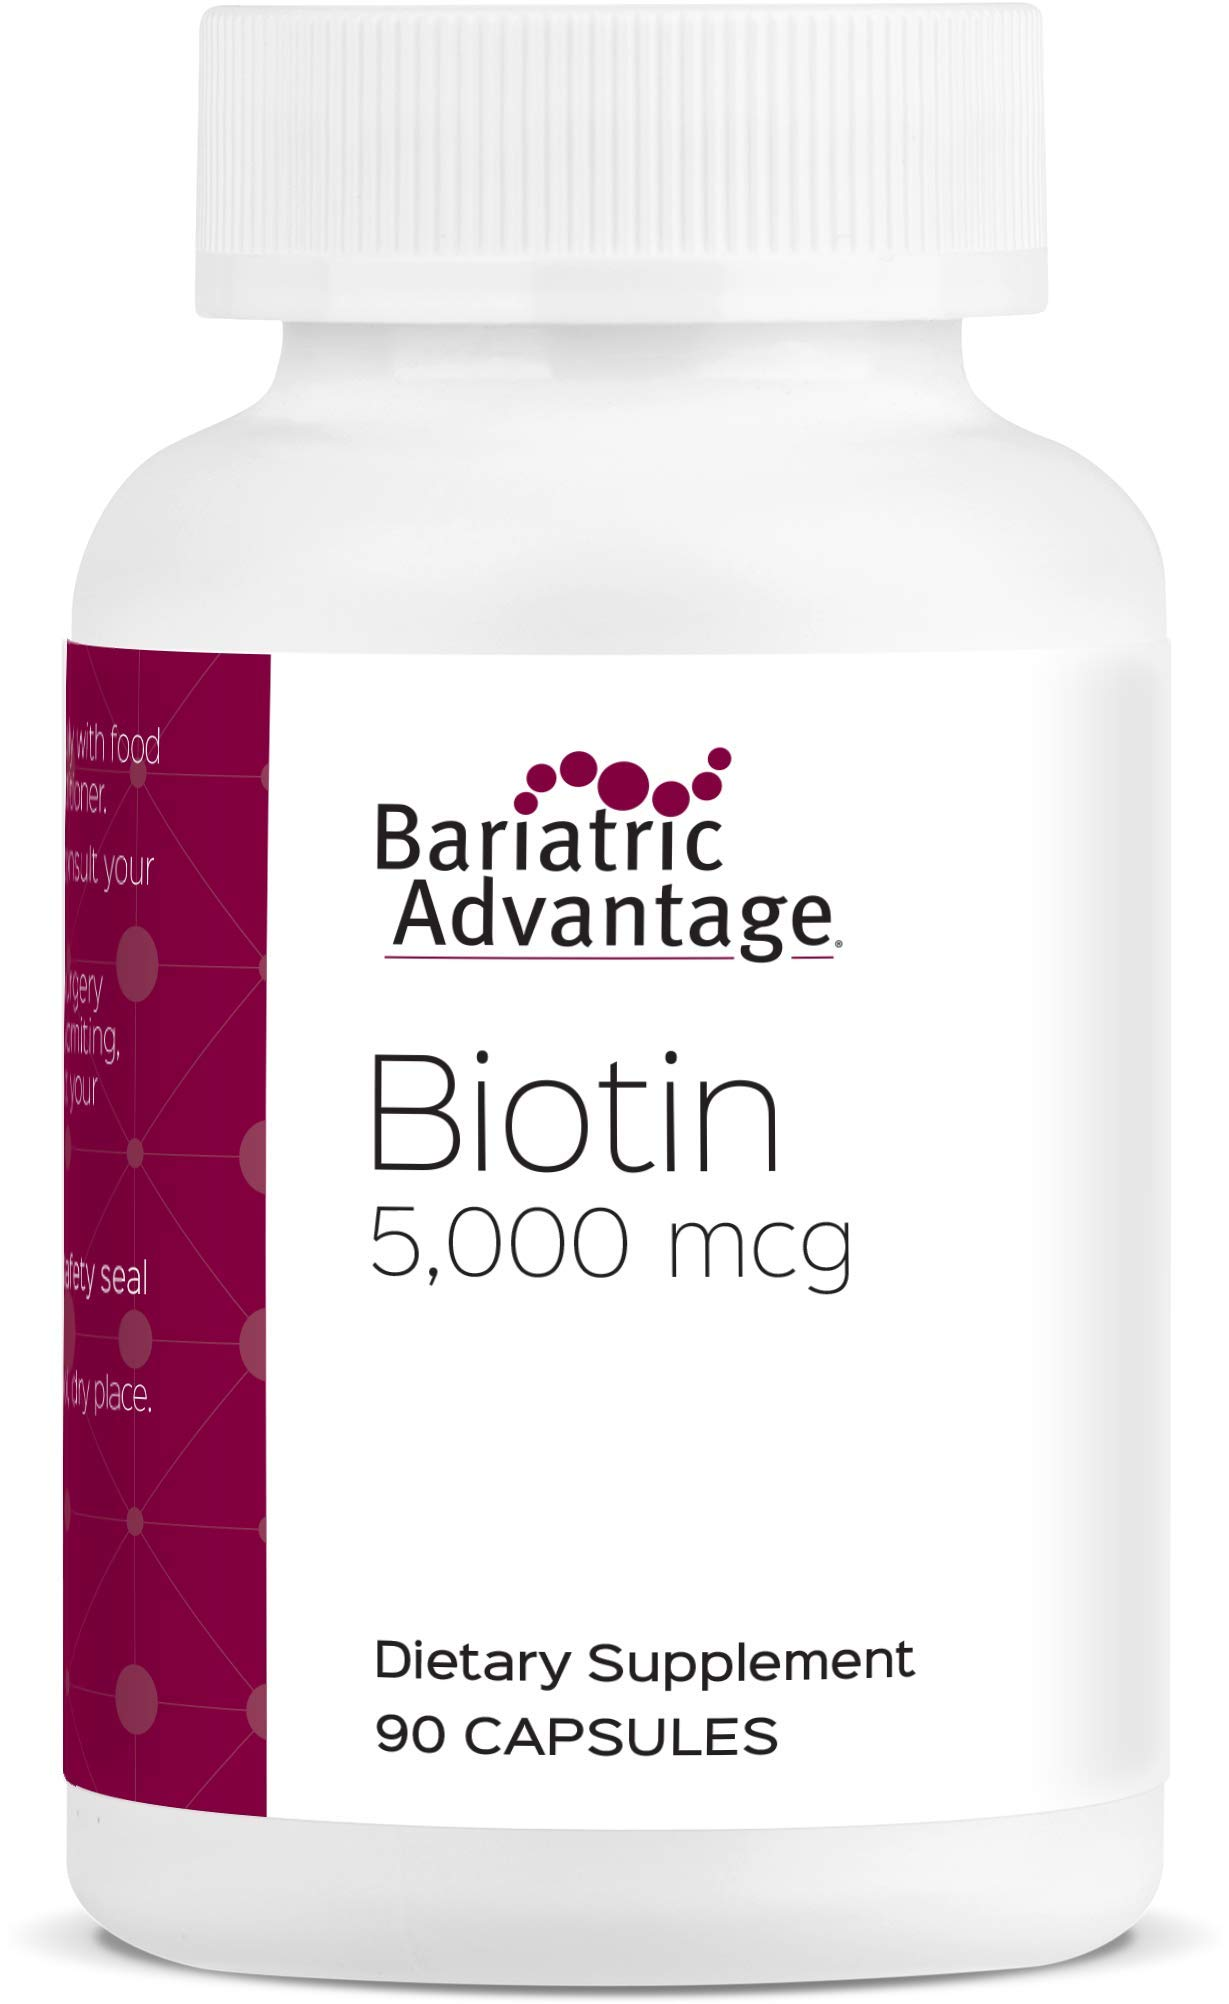 Bariatric Advantage - 5mg Biotin Capsules, 90 Count by Bariatric Advantage